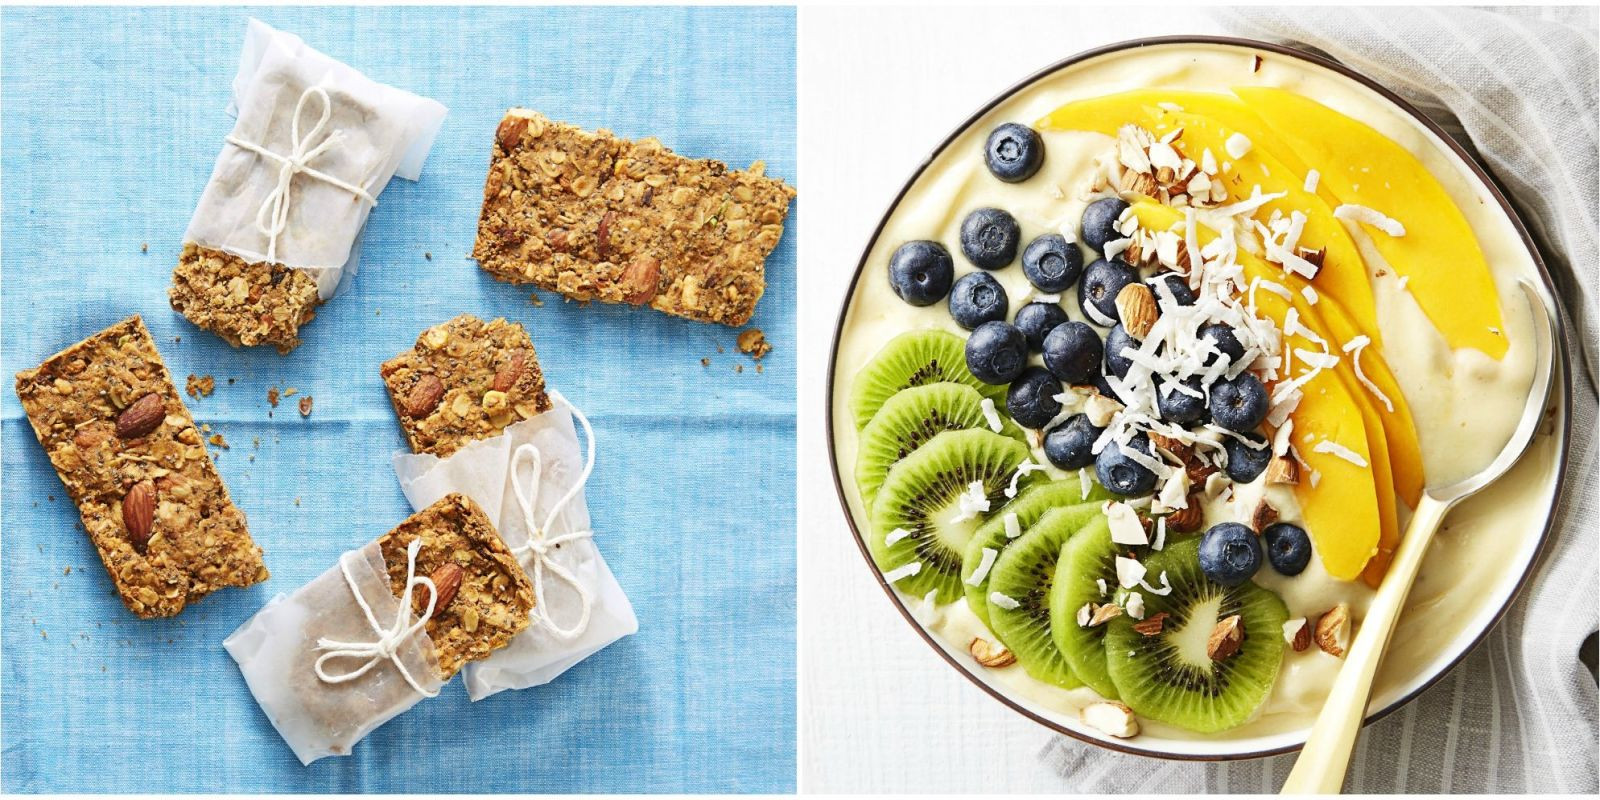 Easy Healthy Breakfast  48 Easy Healthy Breakfast Ideas Recipes for Quick and